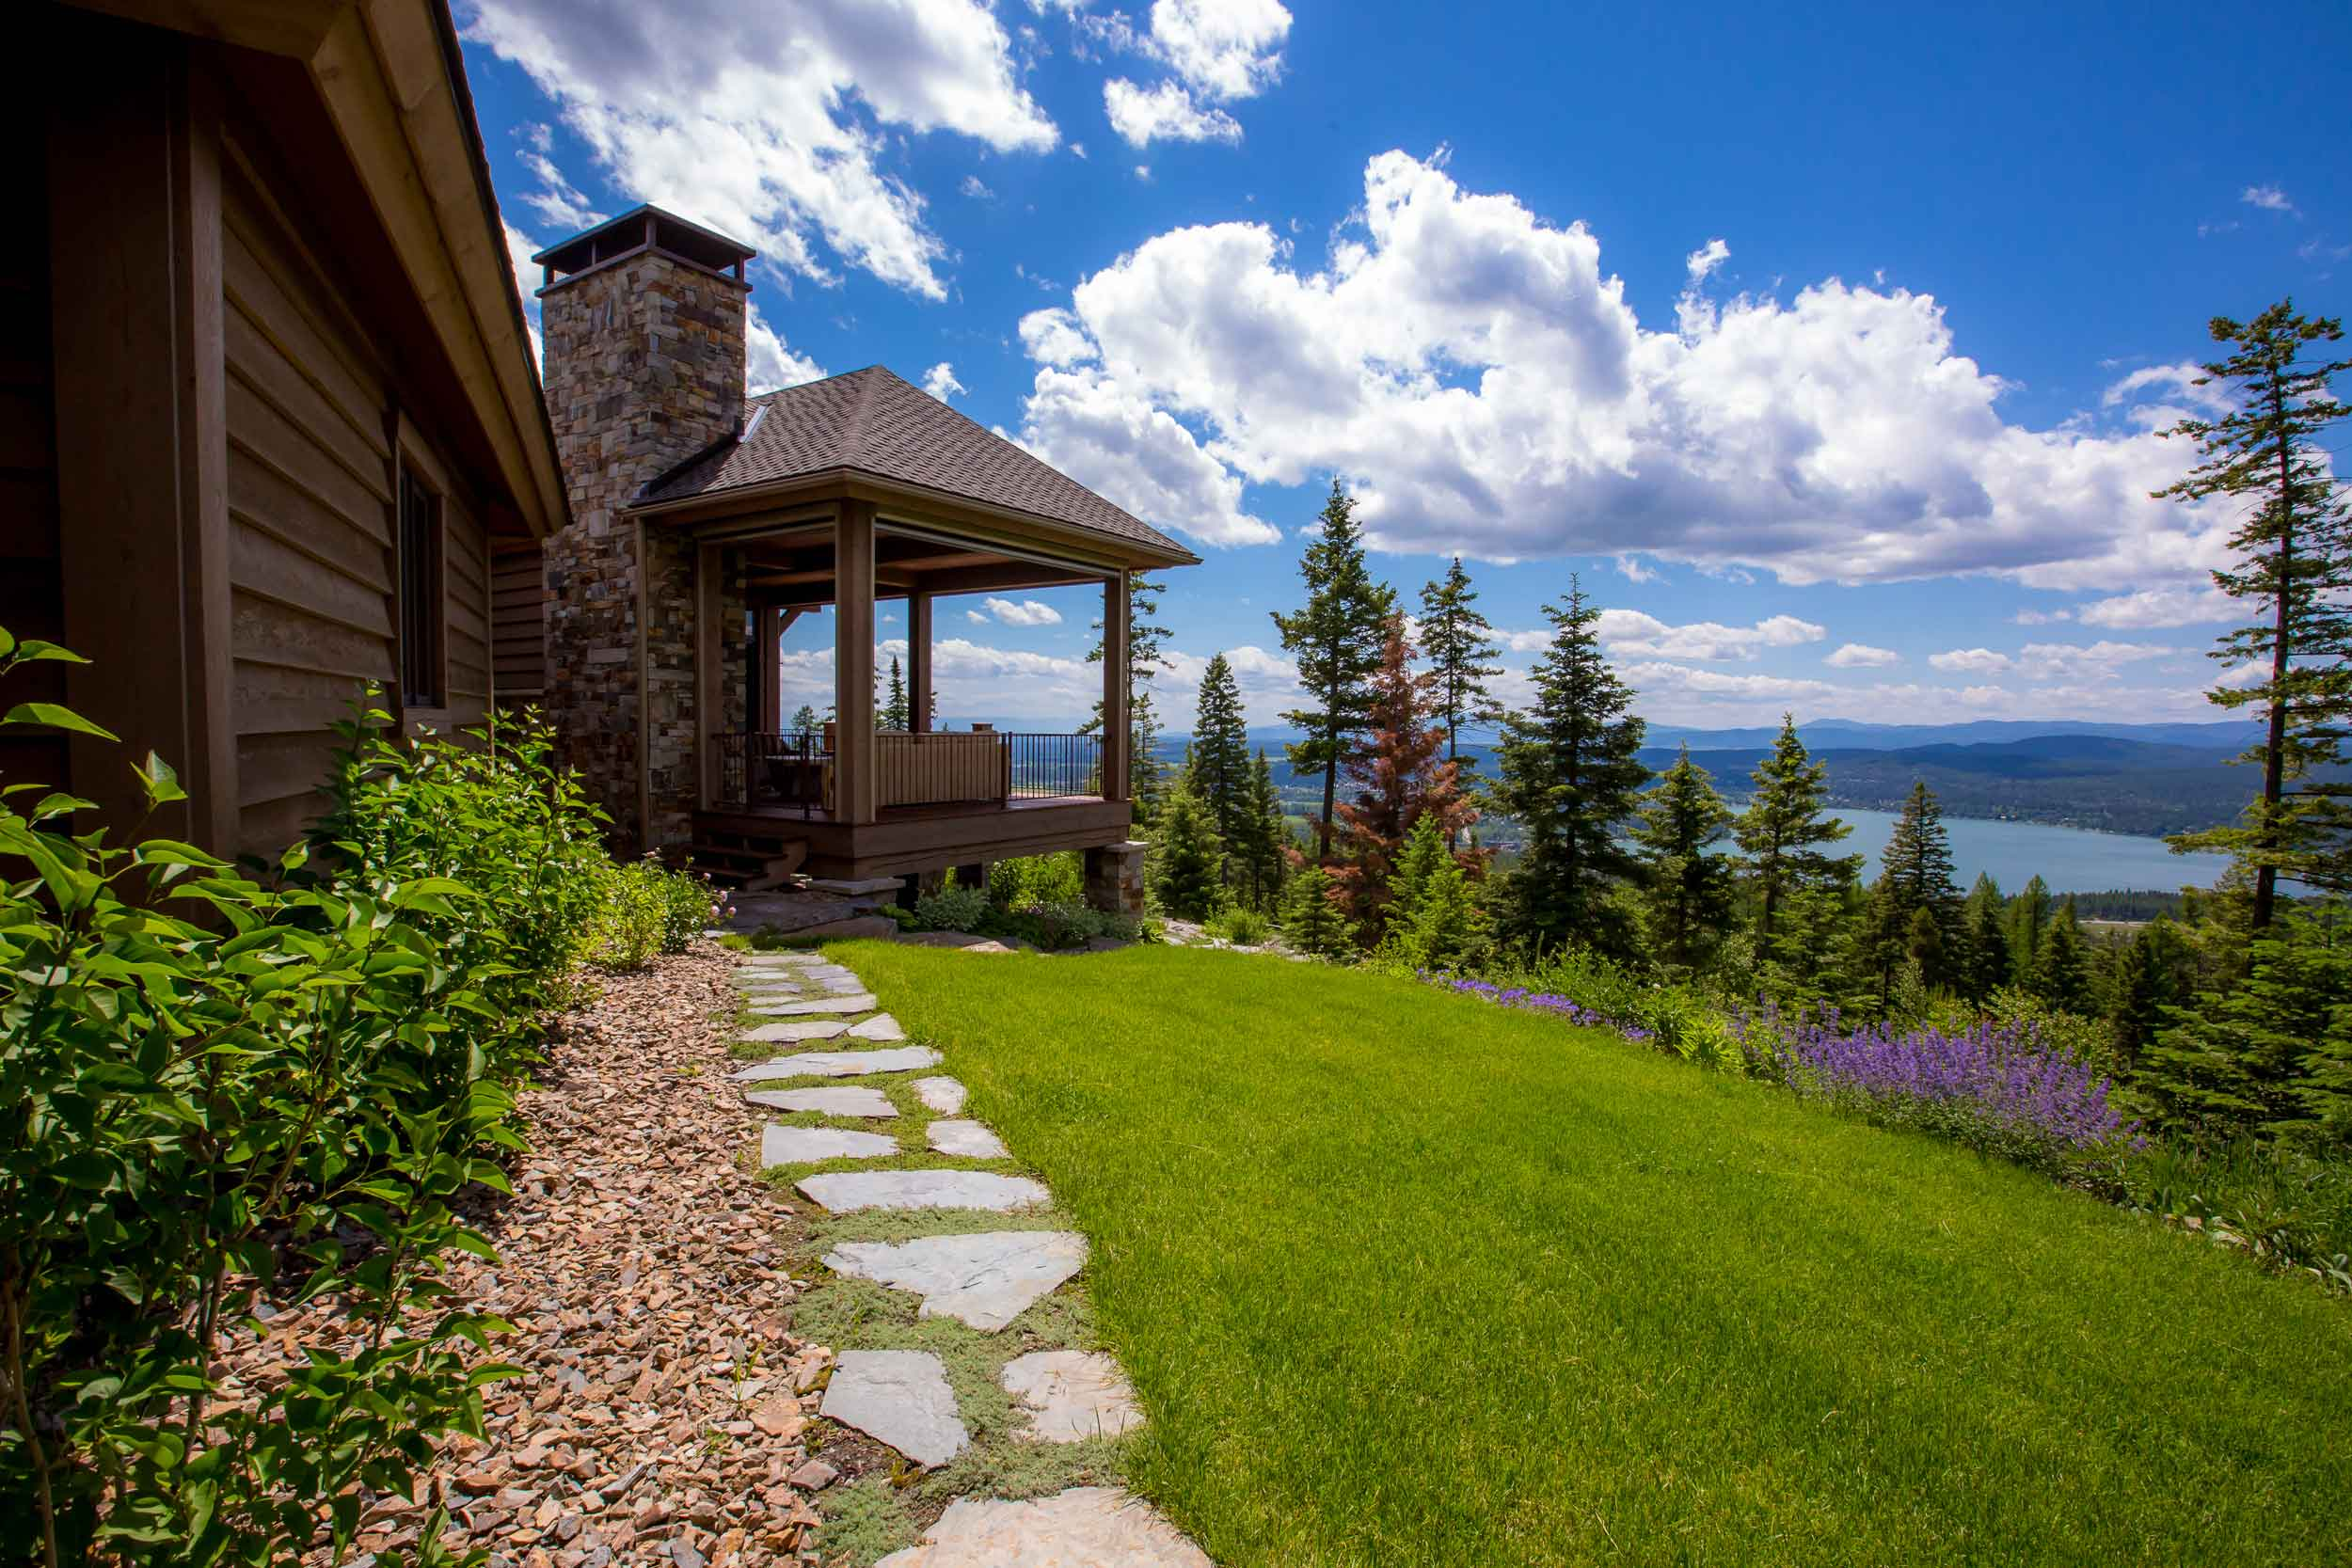 The rustic beauty of Montana's Flathead Valley wilderness is on full display from the multiple decks of this luxury log retreat.